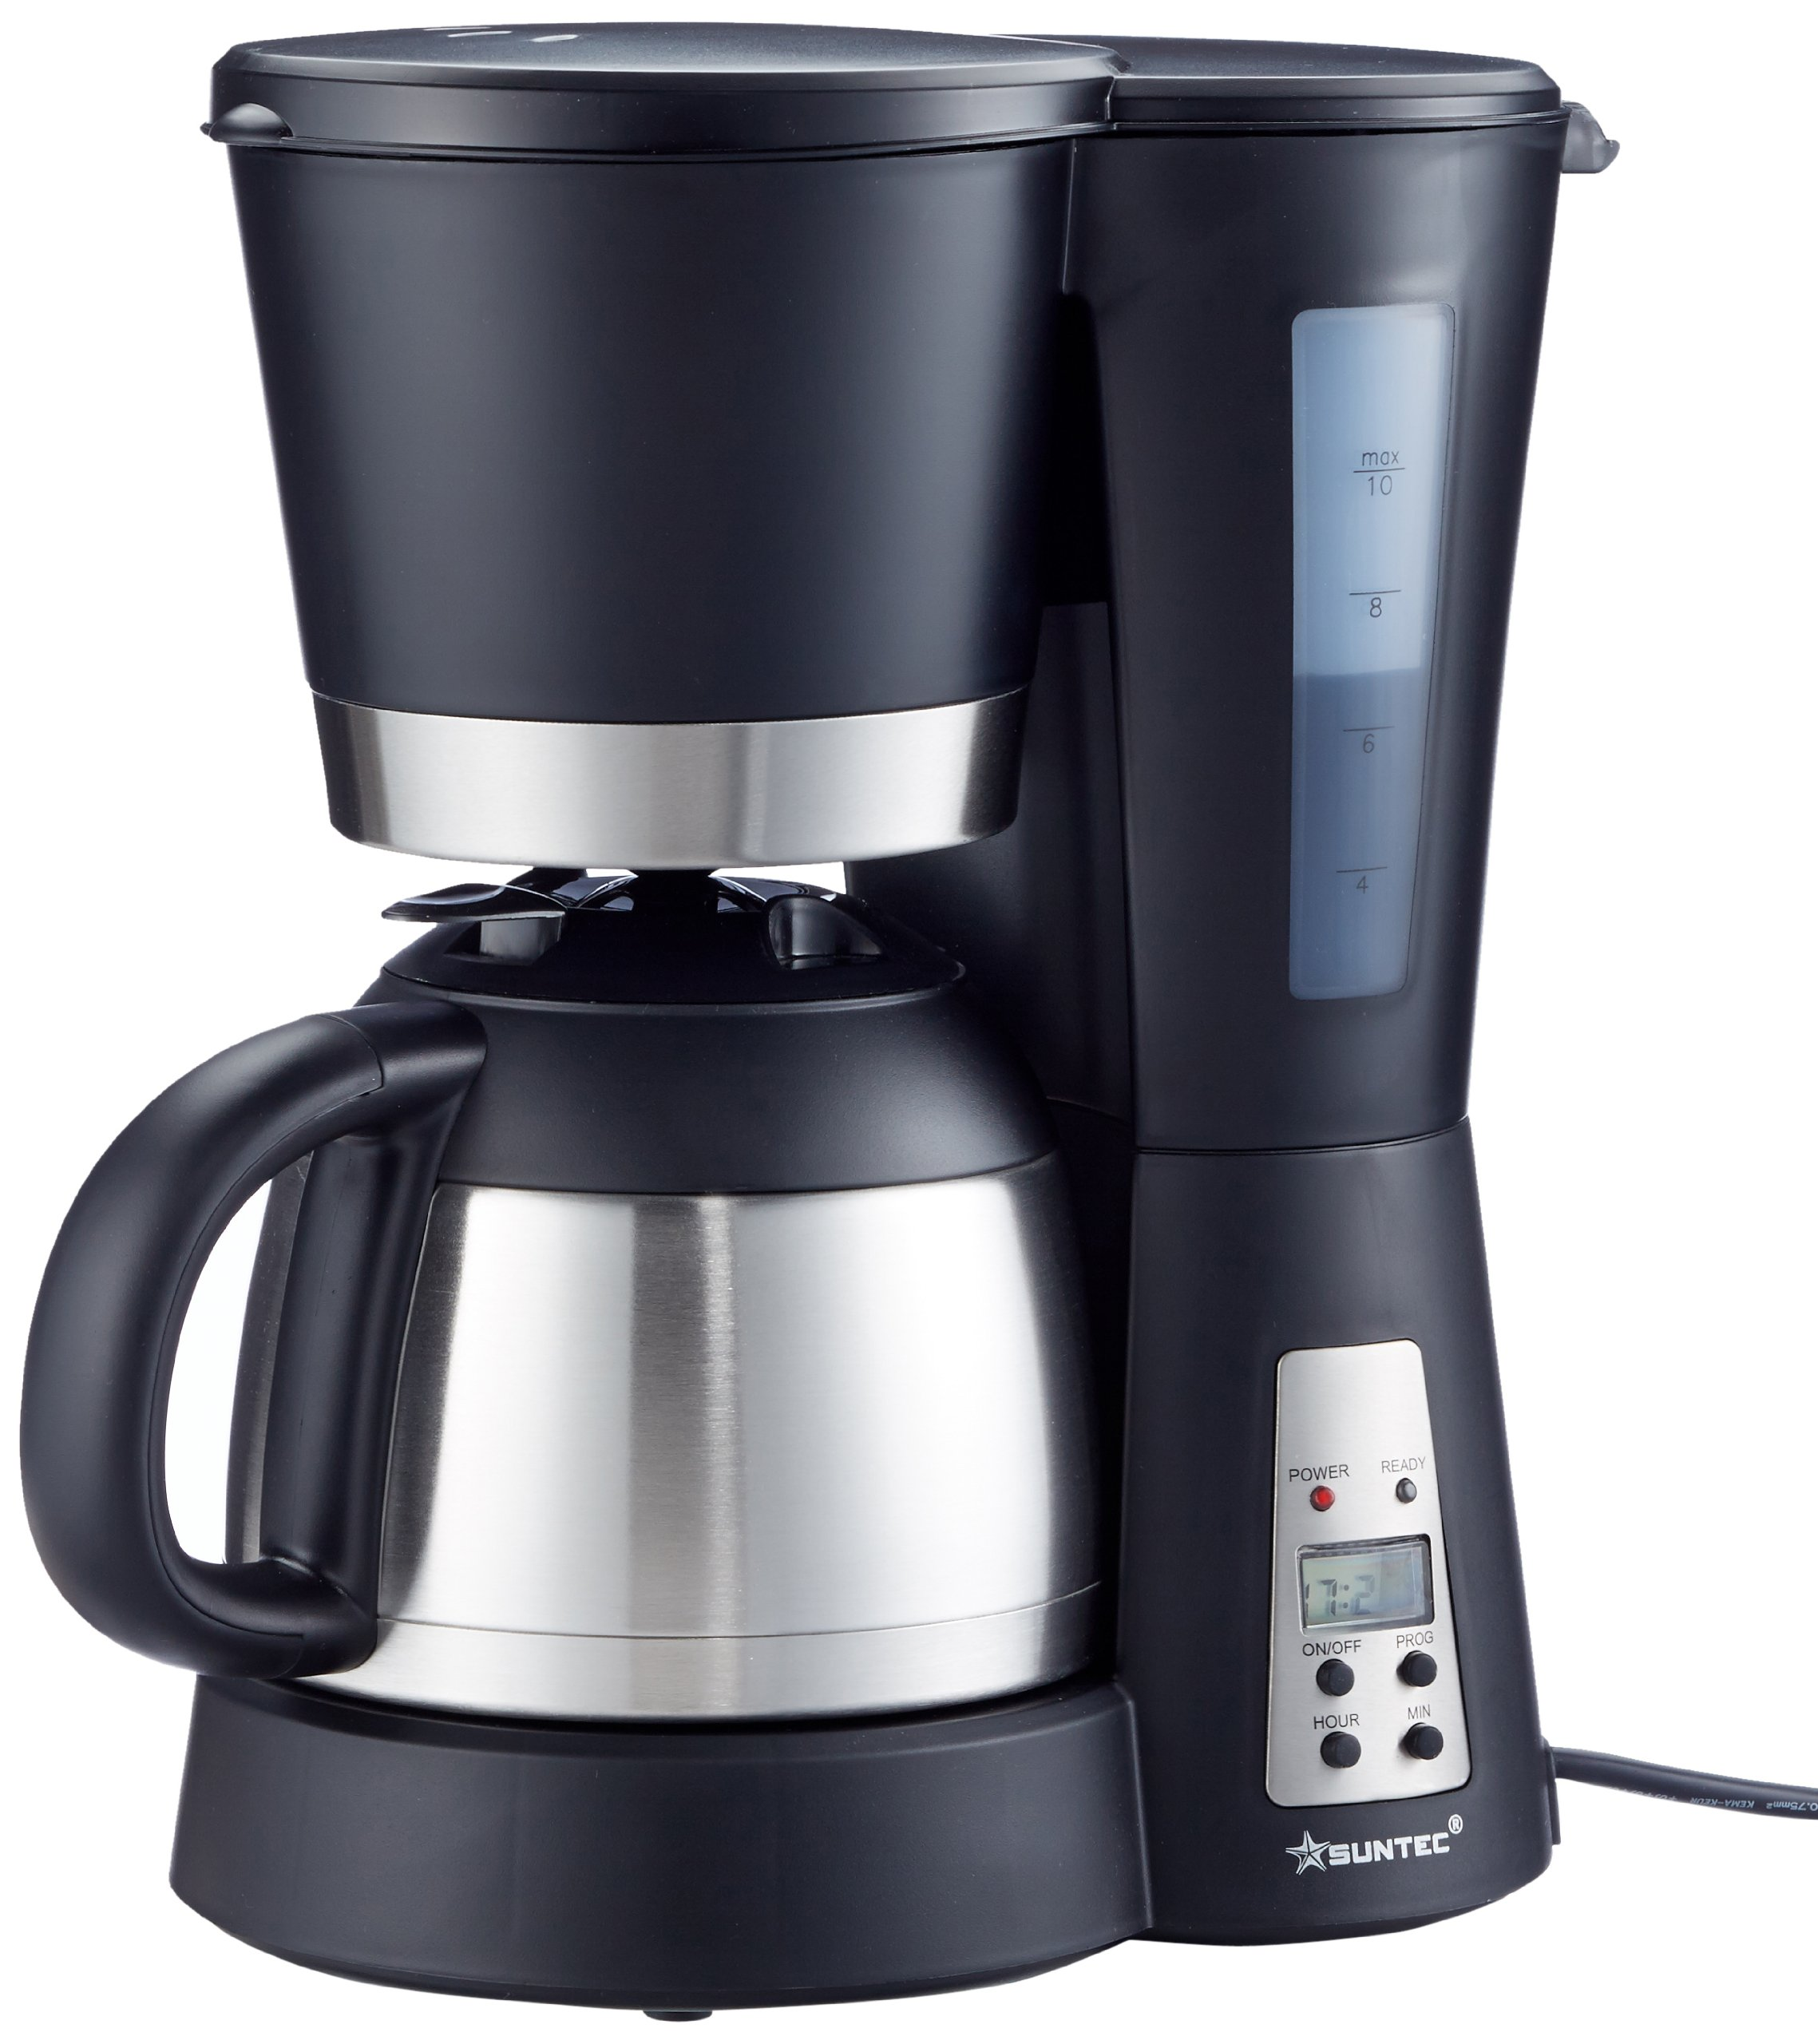 SUNTEC-Filter-Kaffeemaschine-KAM-9004-Mit-Timer-Programmierung-Anti-Tropf-Feature-Thermoskanne-10-l-max-800-Watt